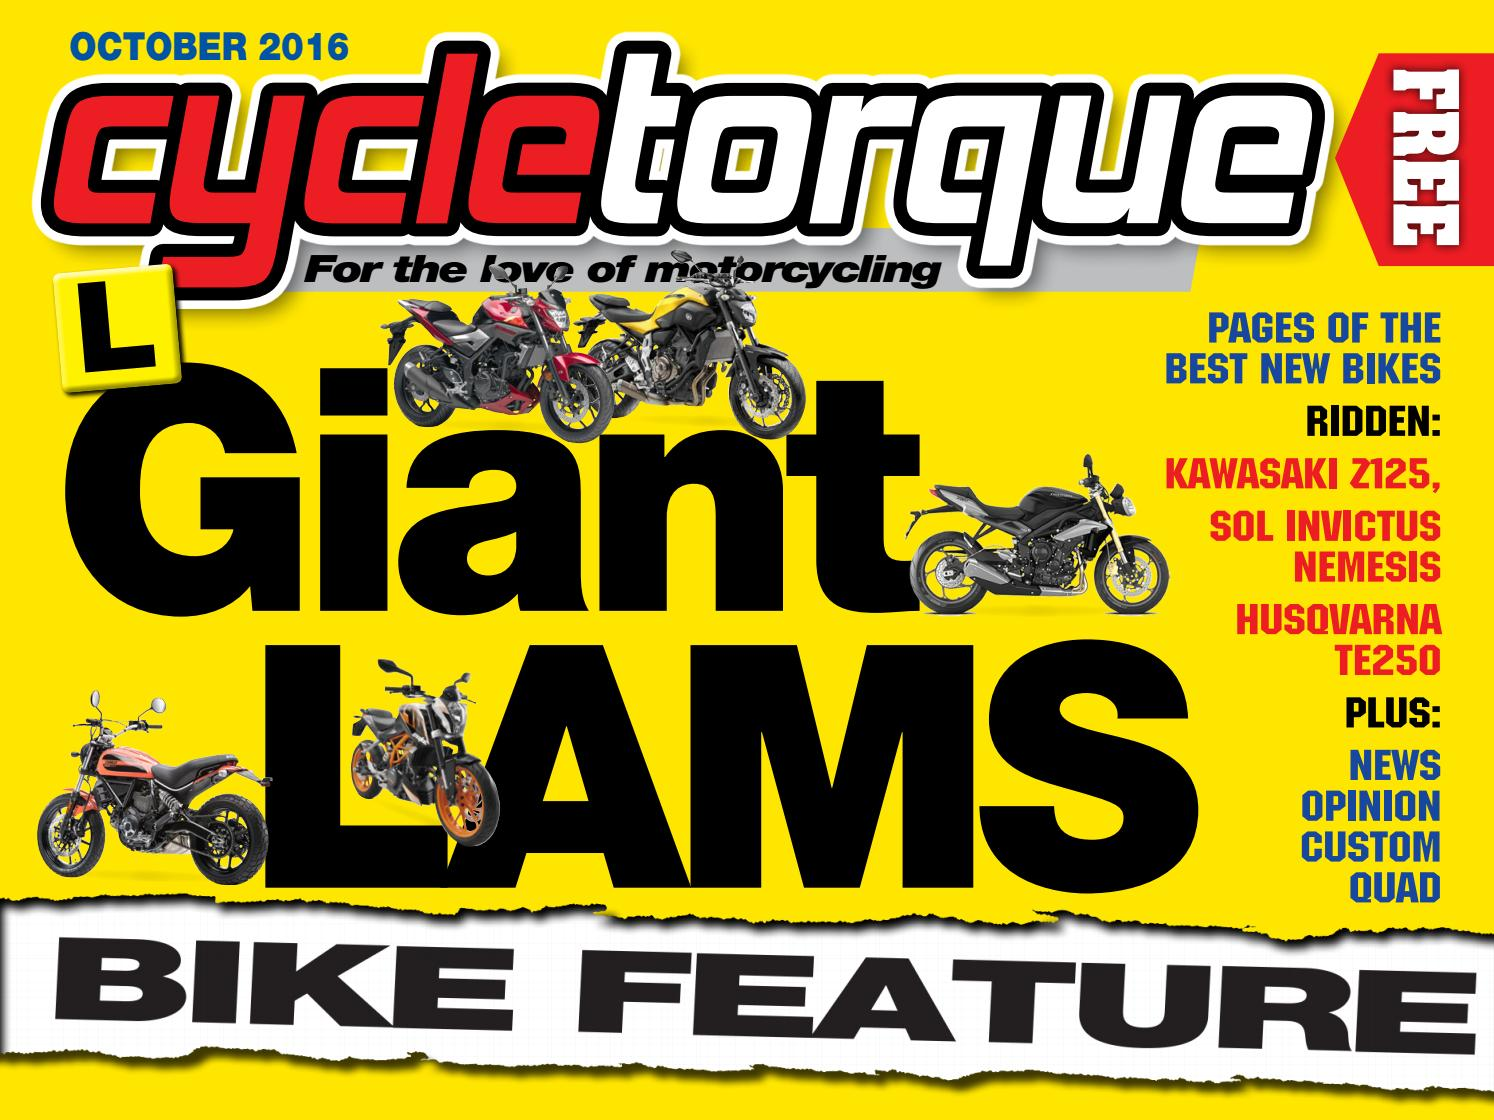 Cycle Torque October 2016 by Cycle Torque - issuu